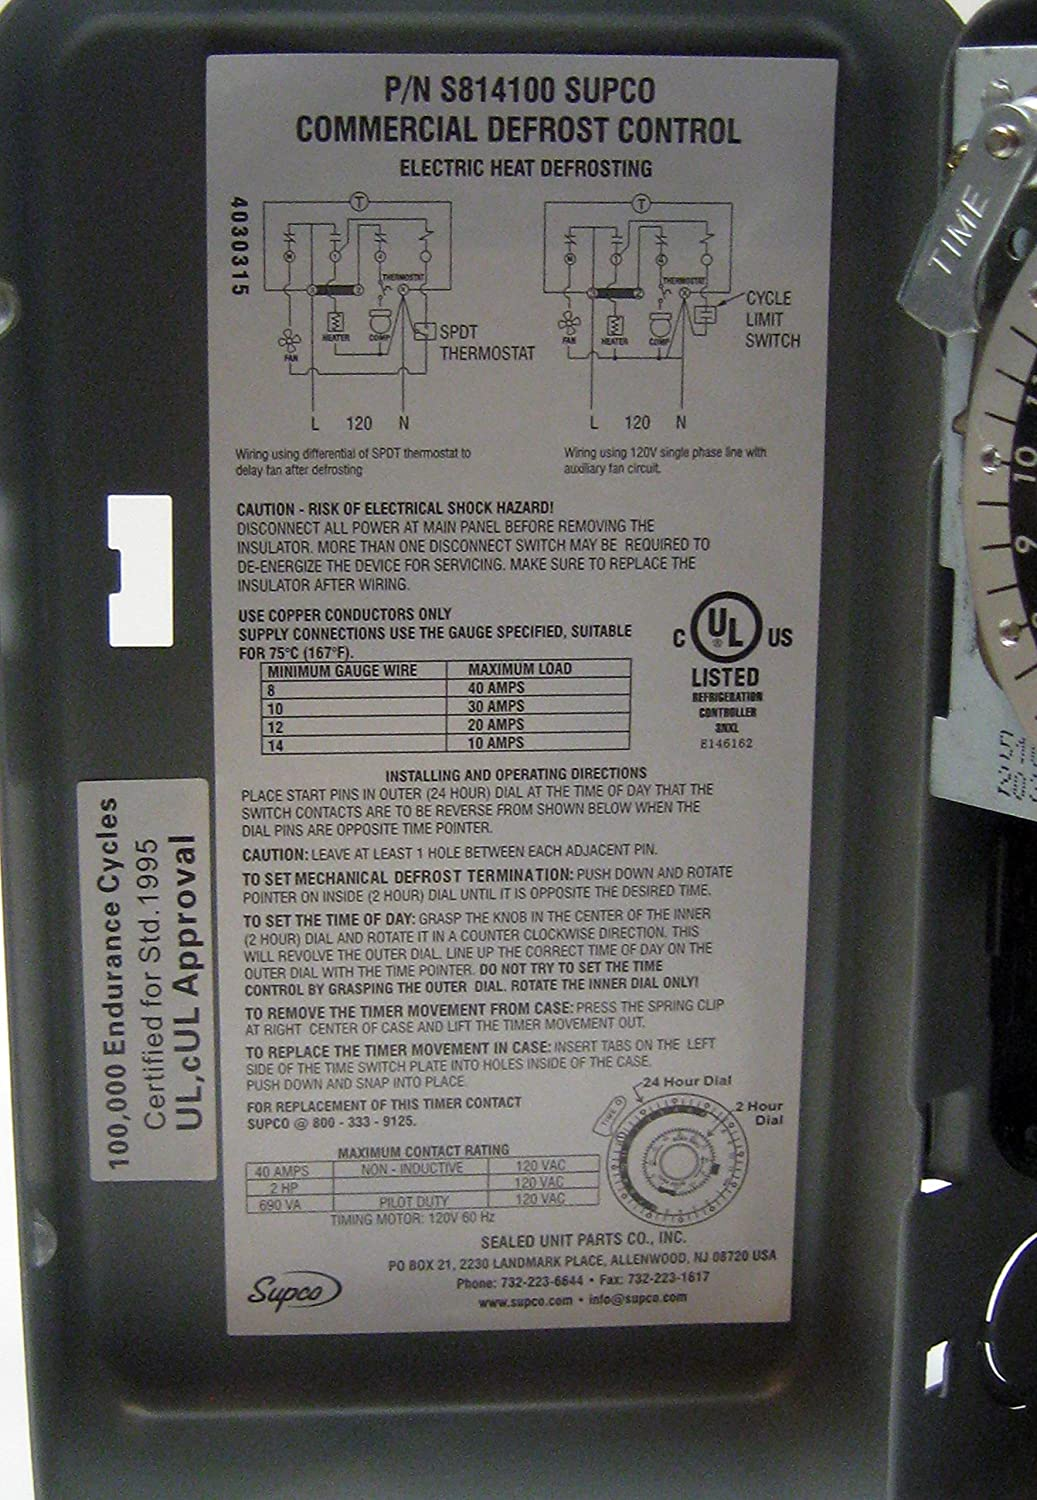 91cj992zkvL._SL1500_ amazon com supco s8141 00 complete commercial defrost timer commercial defrost timer wiring diagram at n-0.co